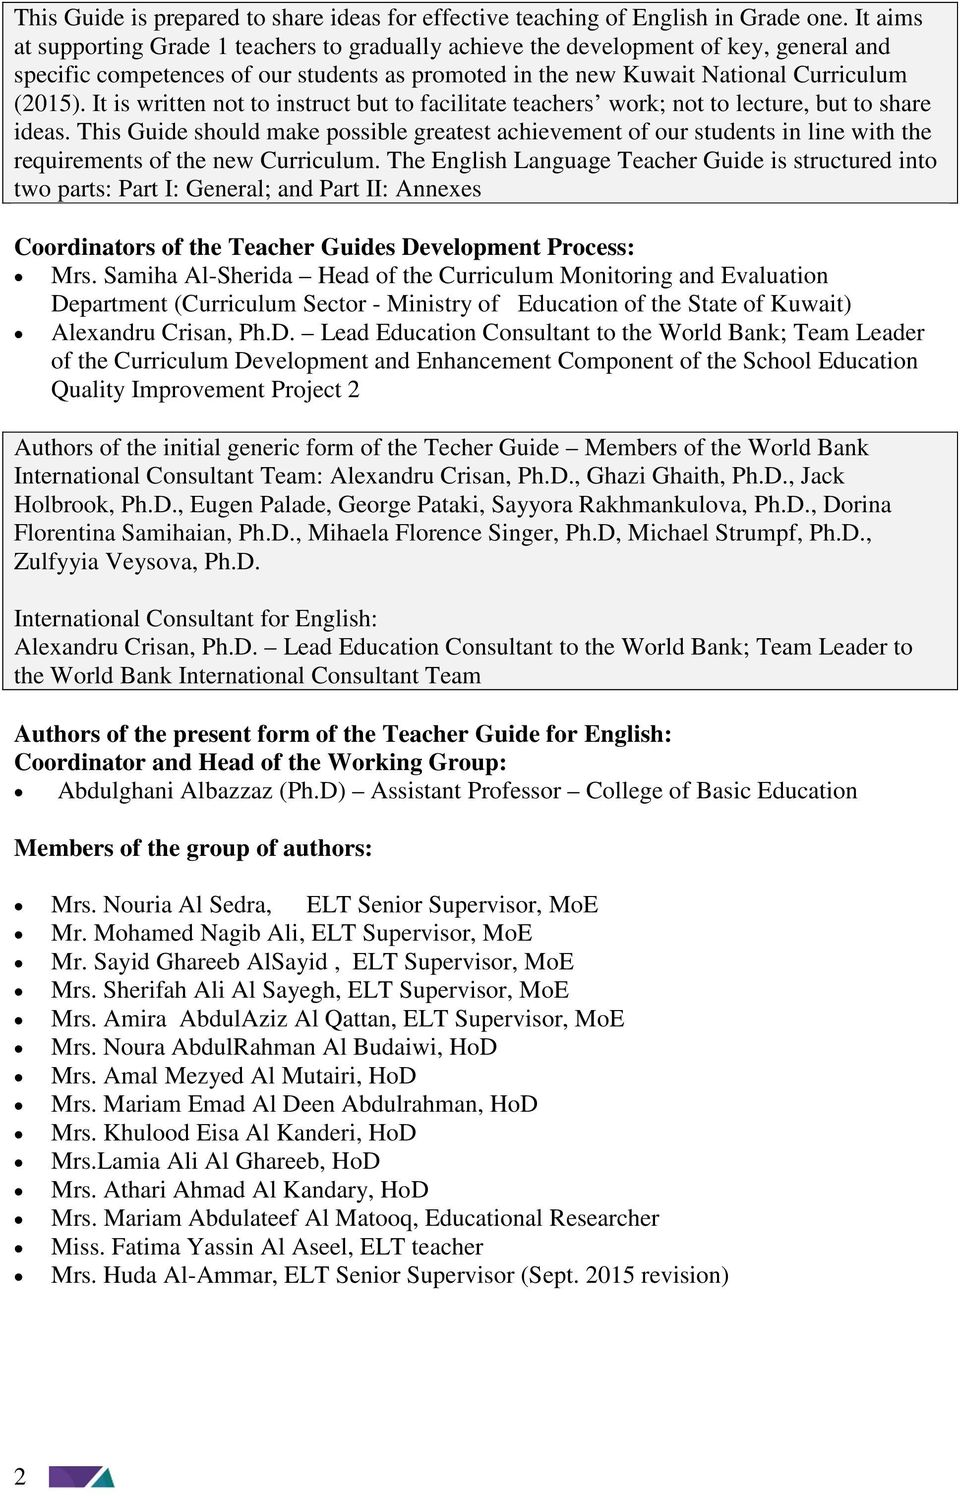 kuwait national curriculum  knc  a guide for effective teaching of english language in grade one